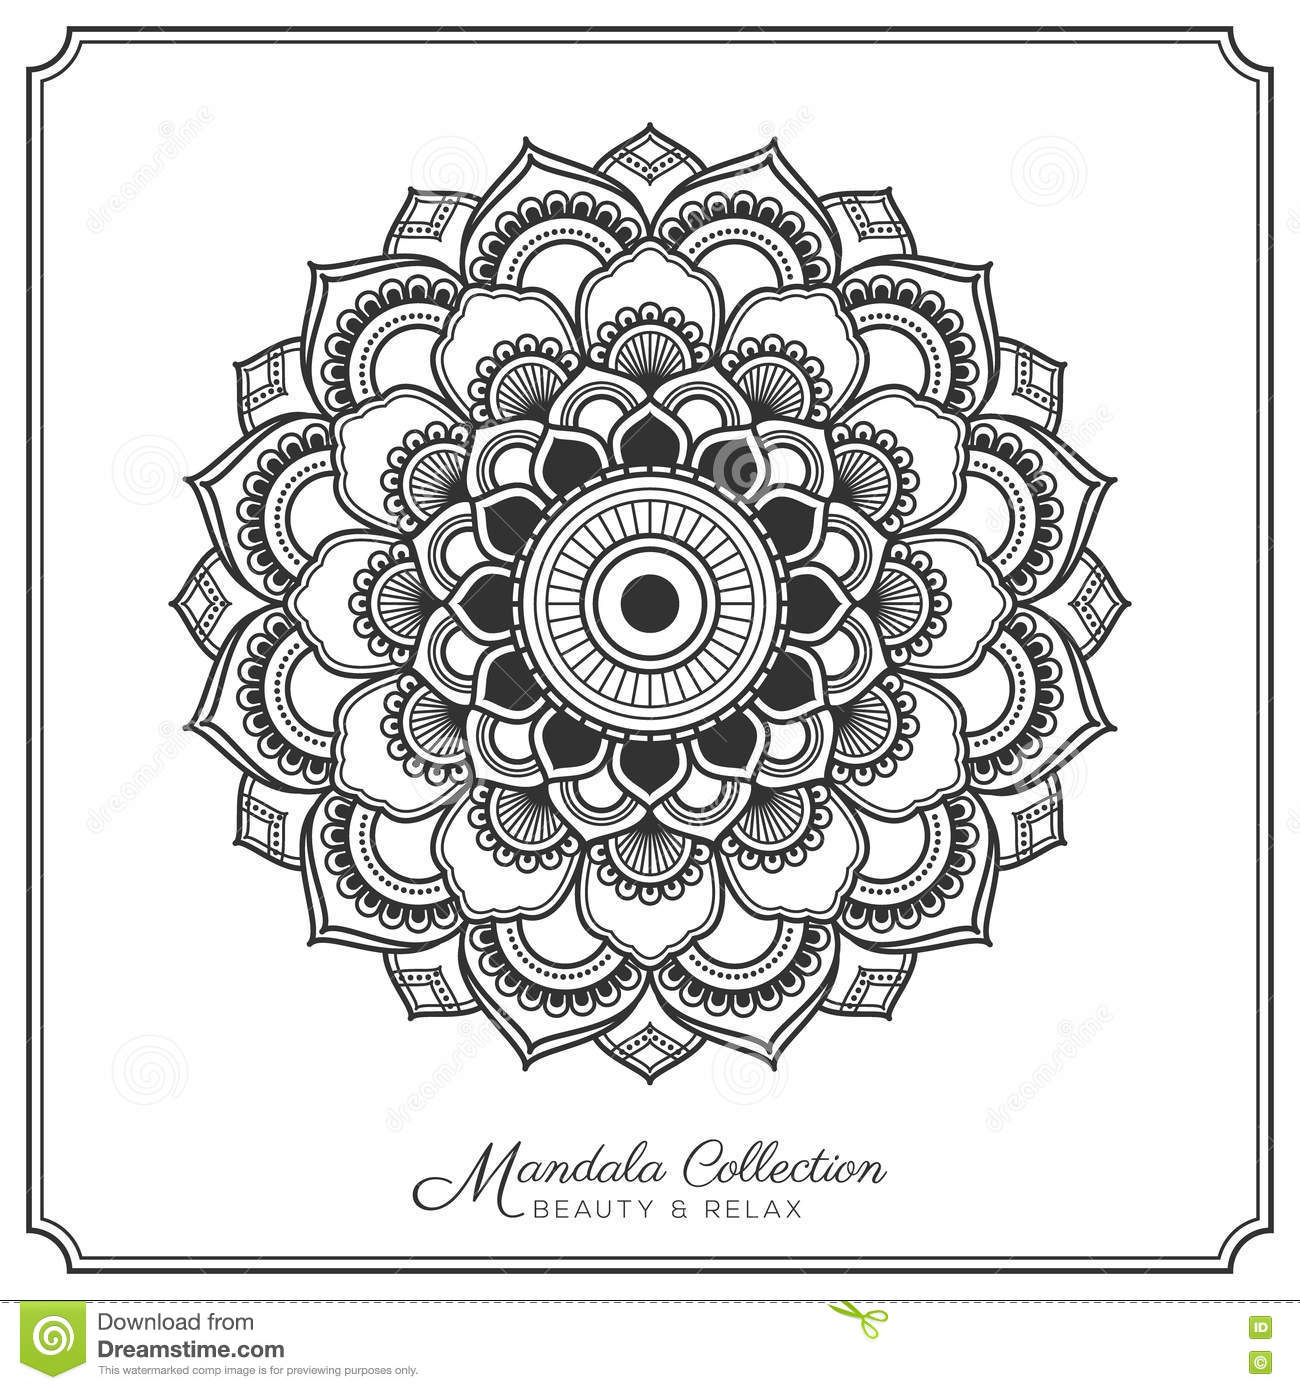 hight resolution of mandala decorative ornament design for coloring page greeting card invitation tattoo yoga and spa symbol vector illustration